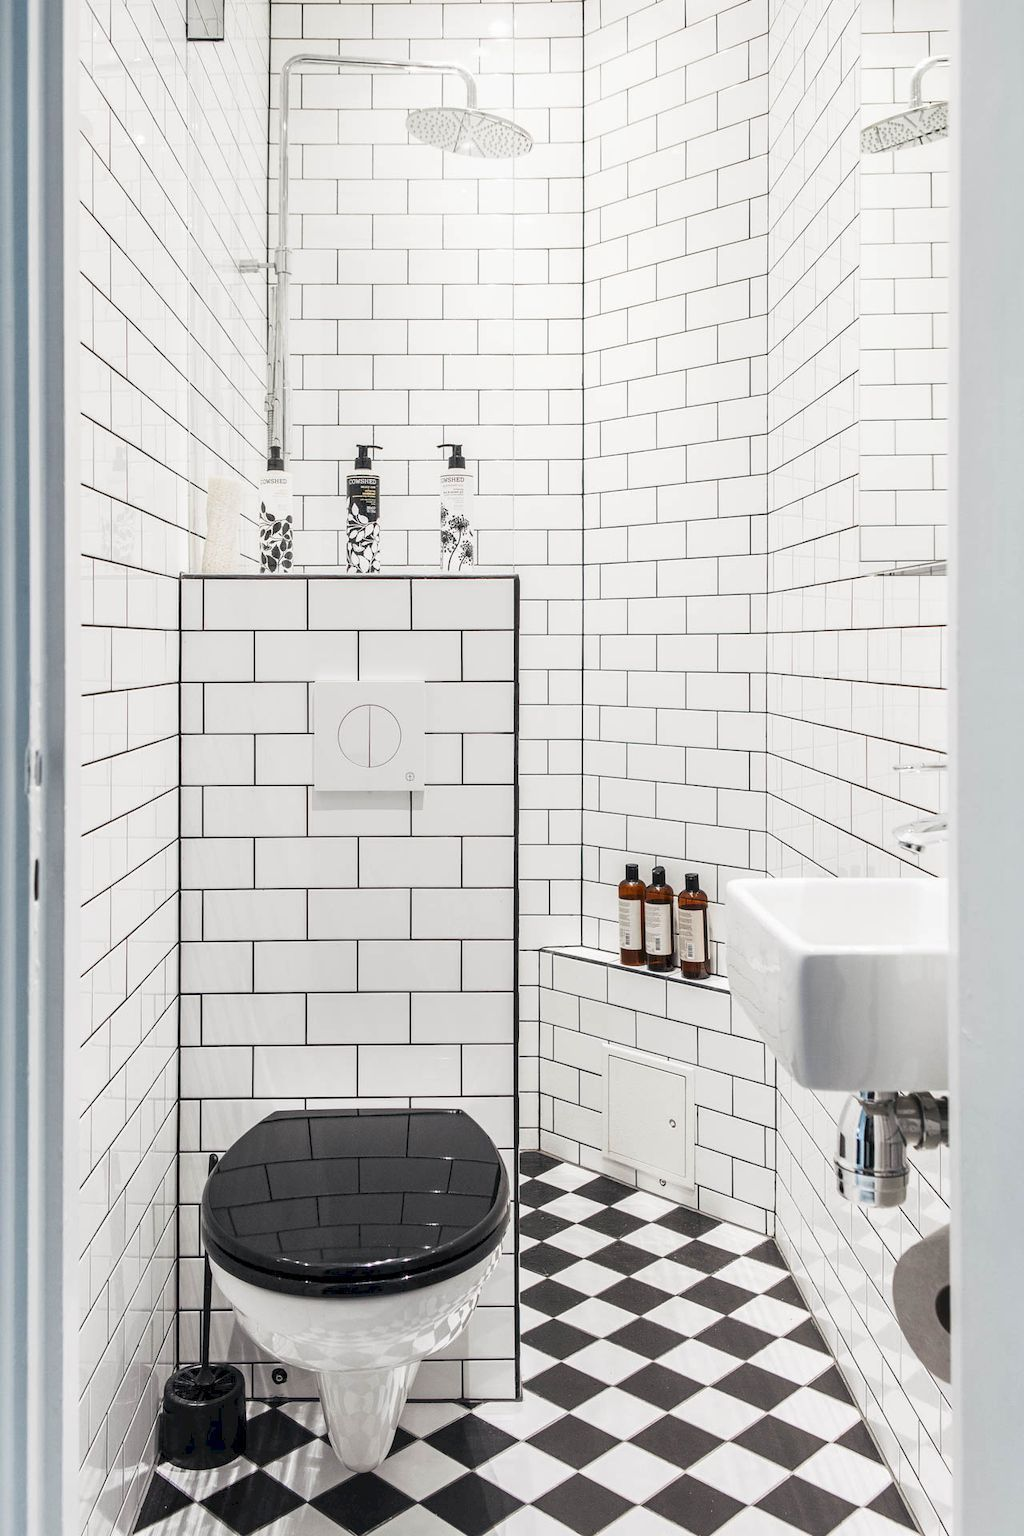 75 Simple Tiny Space Bathroom Ideas On A Budget 33 Whitebathrooms Tinybathrooms Small Bathroom Decor Small Bathroom White Bathroom Designs